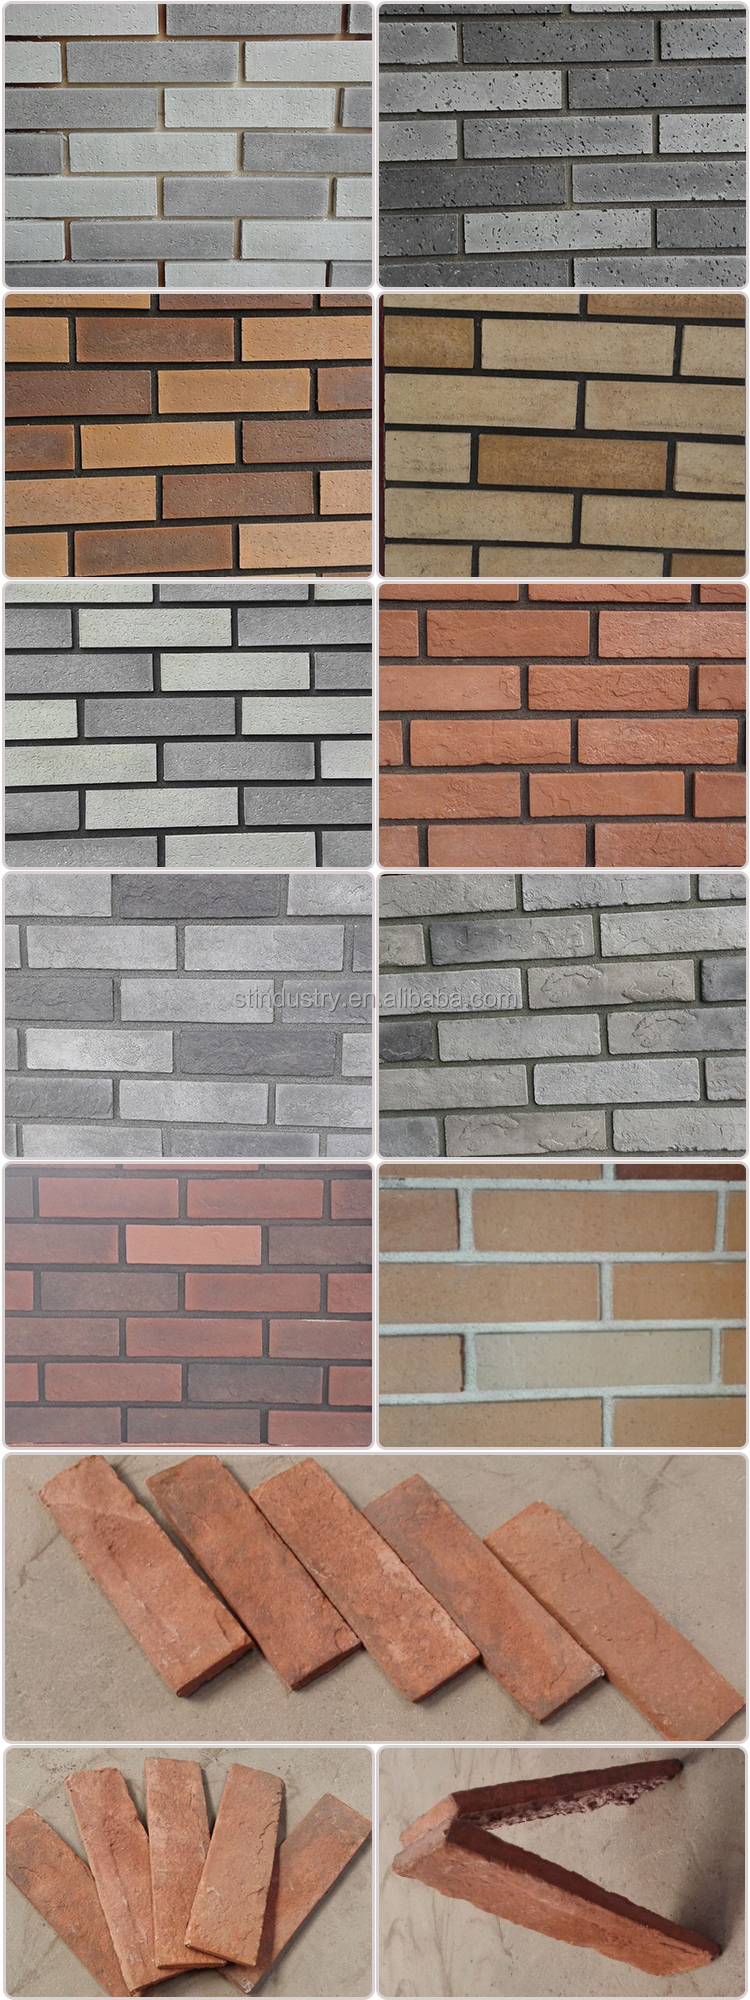 Wall Decorative Low Price Lowes Interior Brick Paneling Buy Lowes Interior Brick Paneling